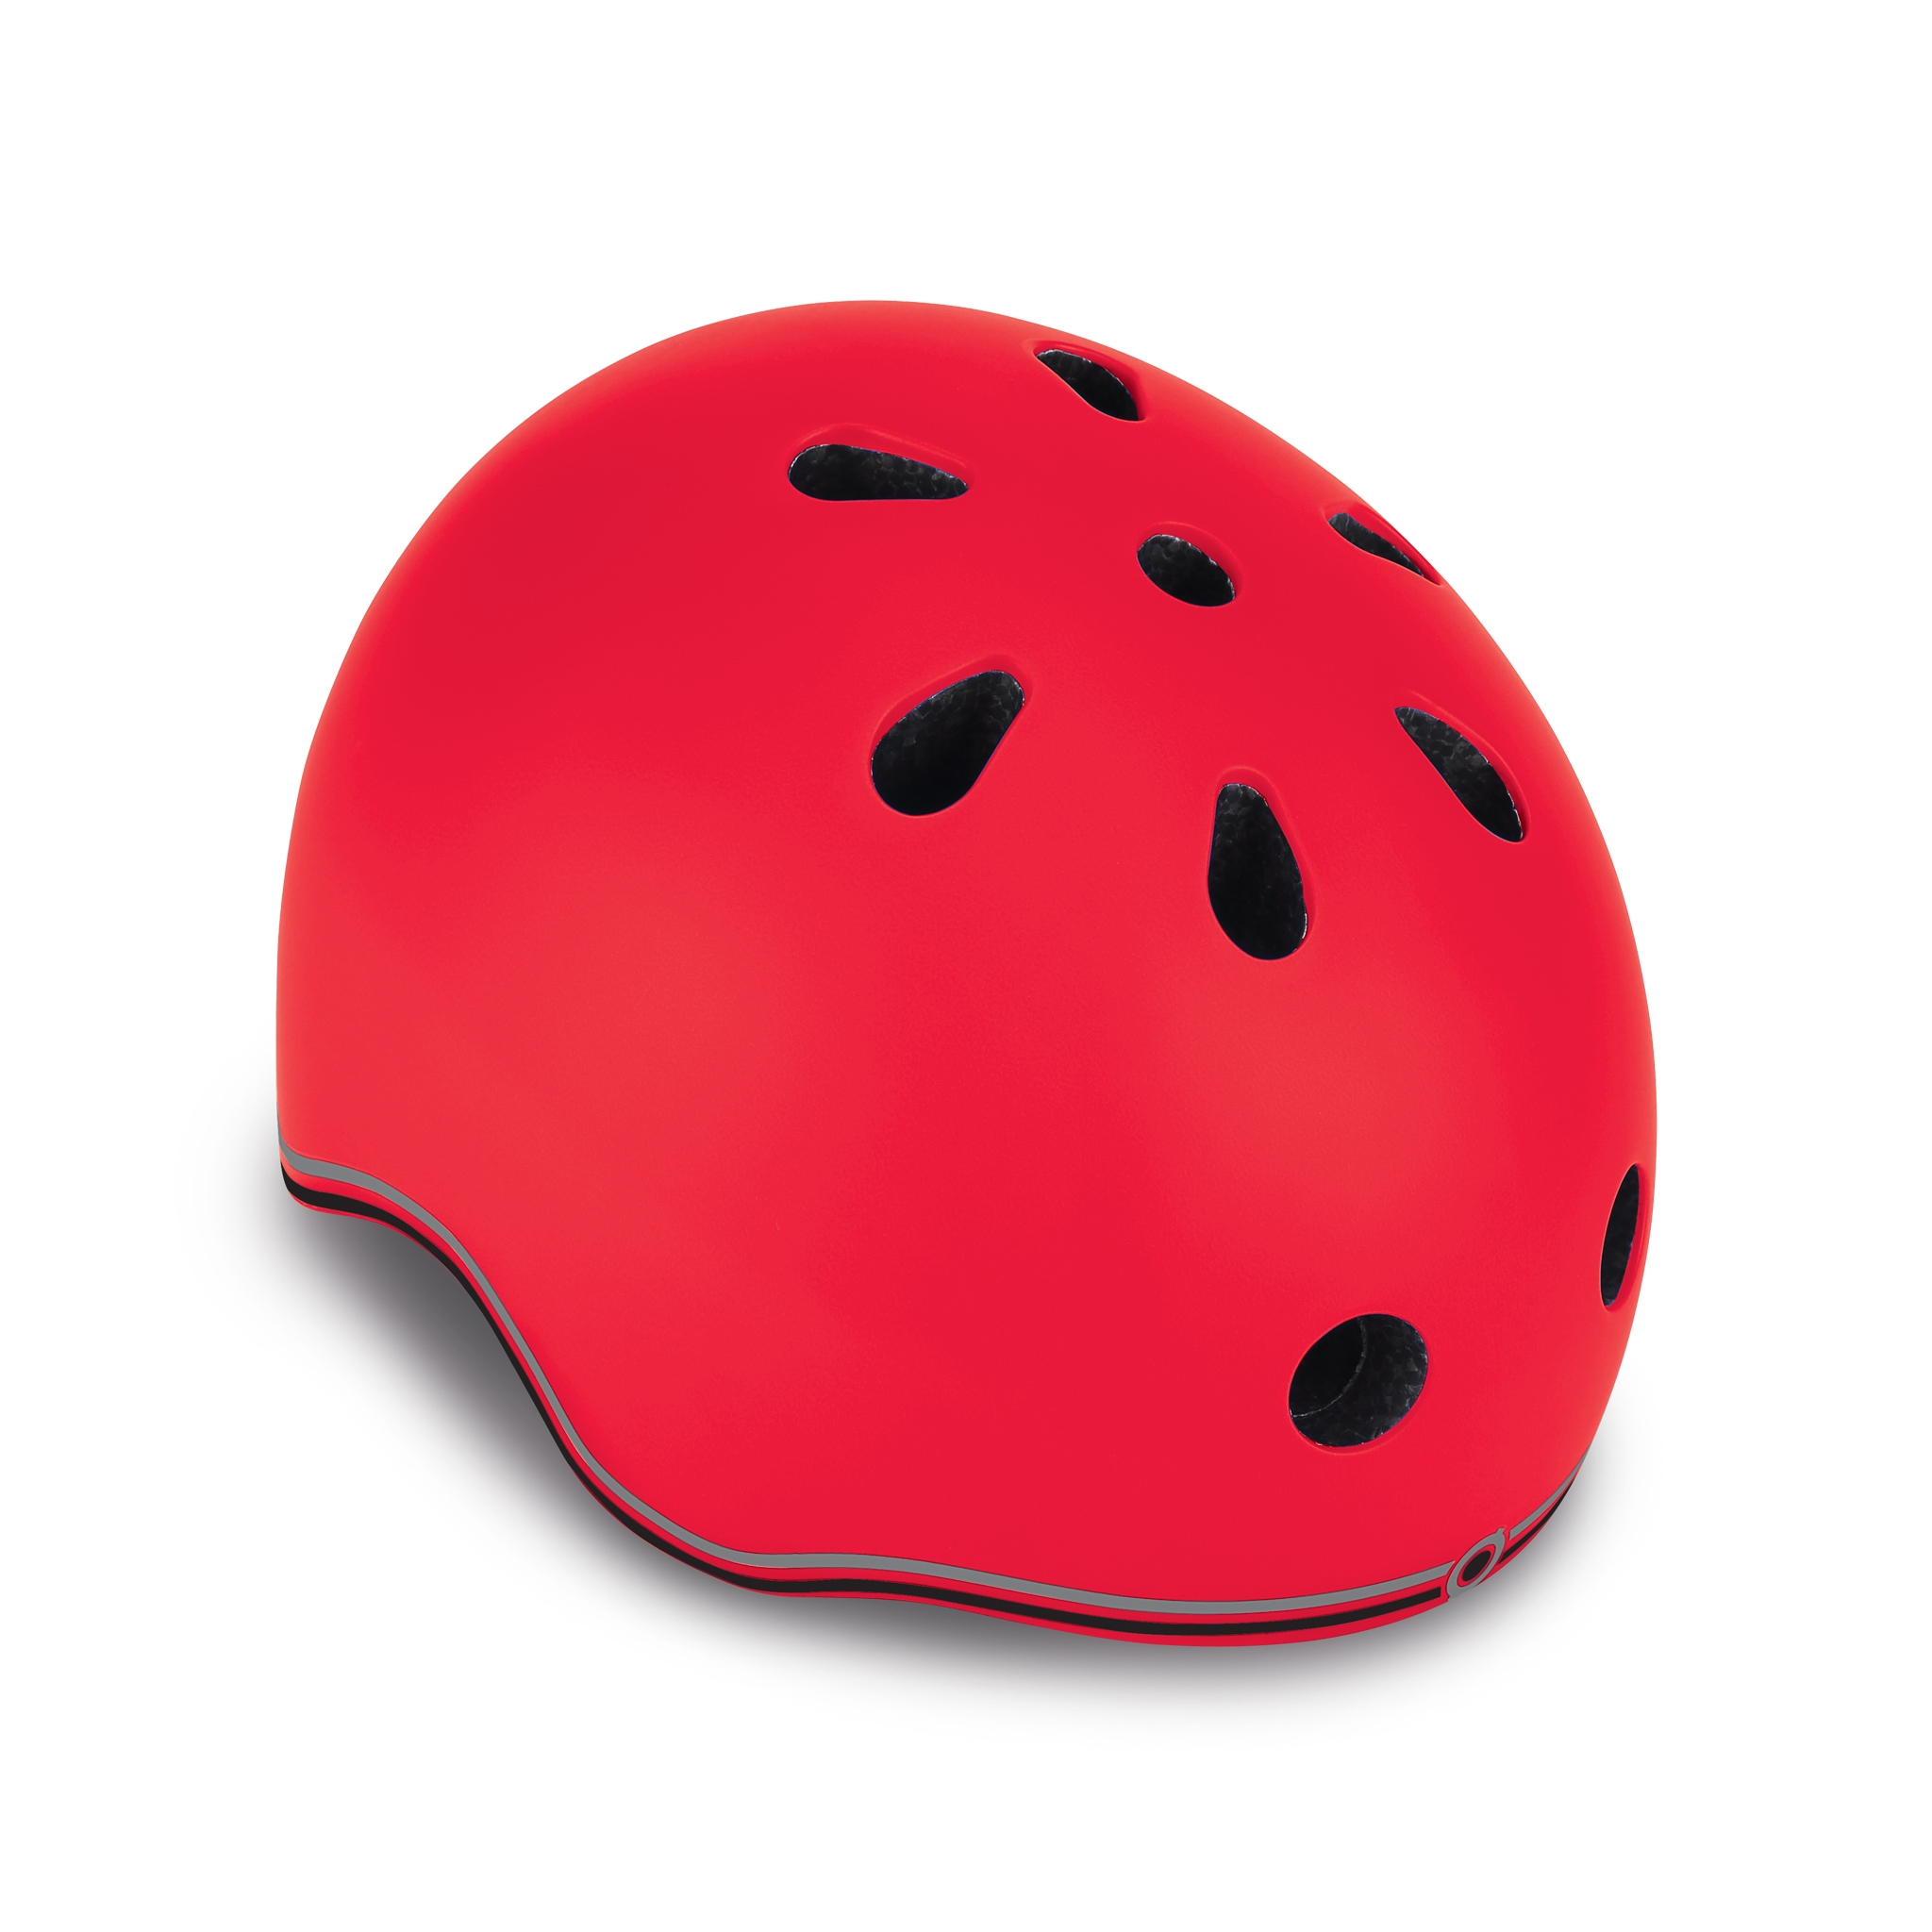 EVO-helmets-scooter-helmets-for-toddlers-in-mold-polycarbonate-outer-shell-new-red 0